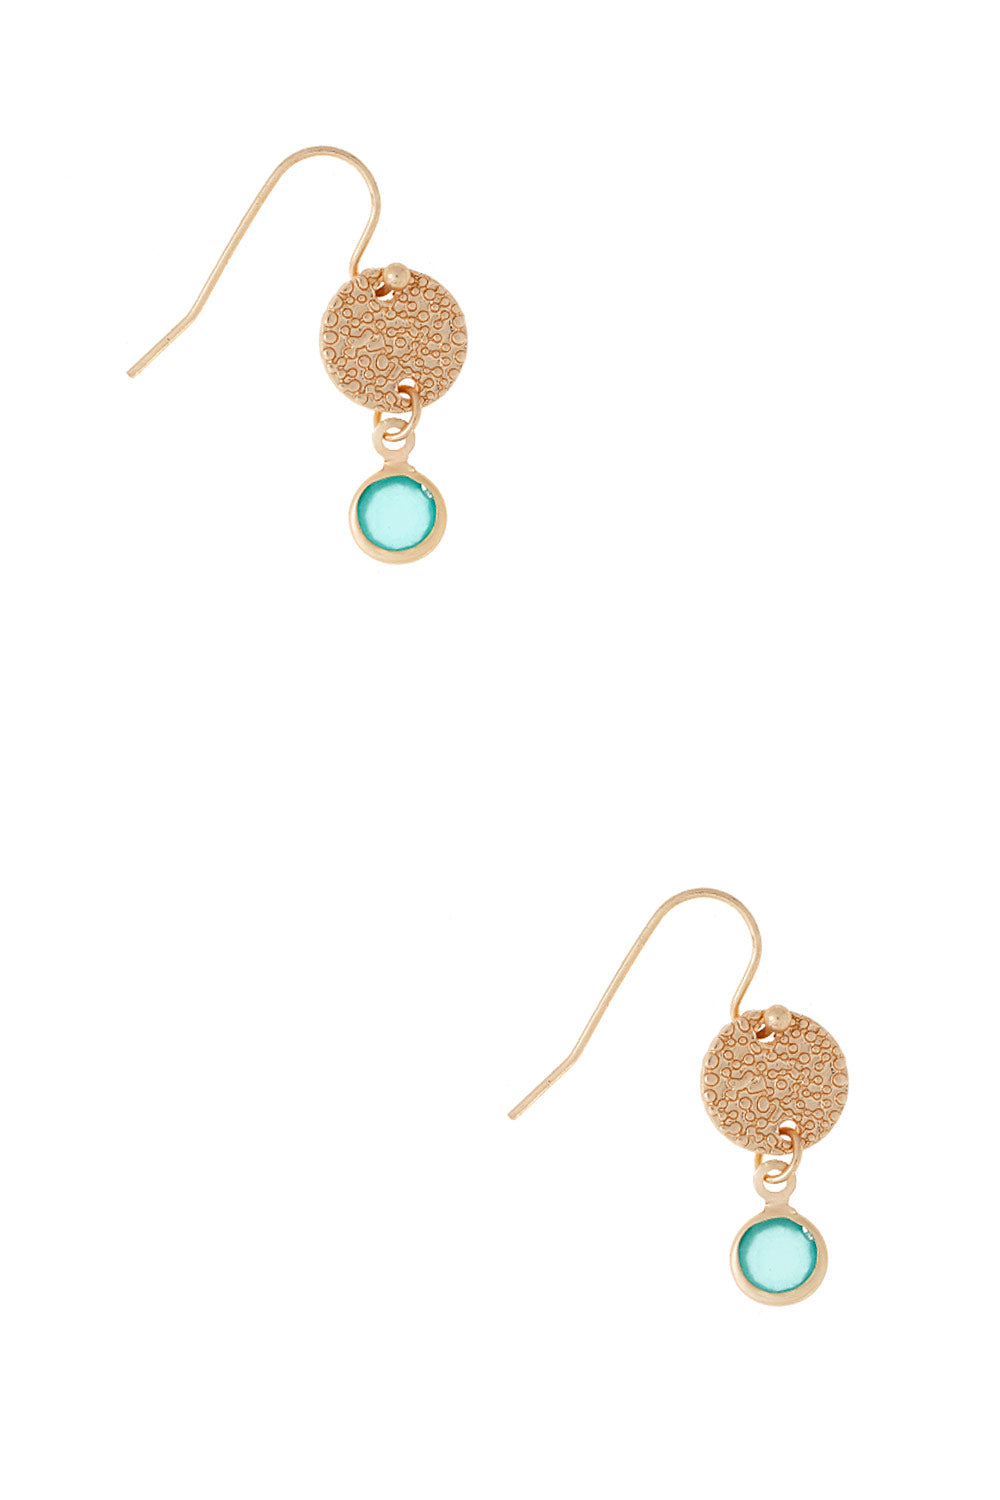 Type 1 Dainty Gems Earrings